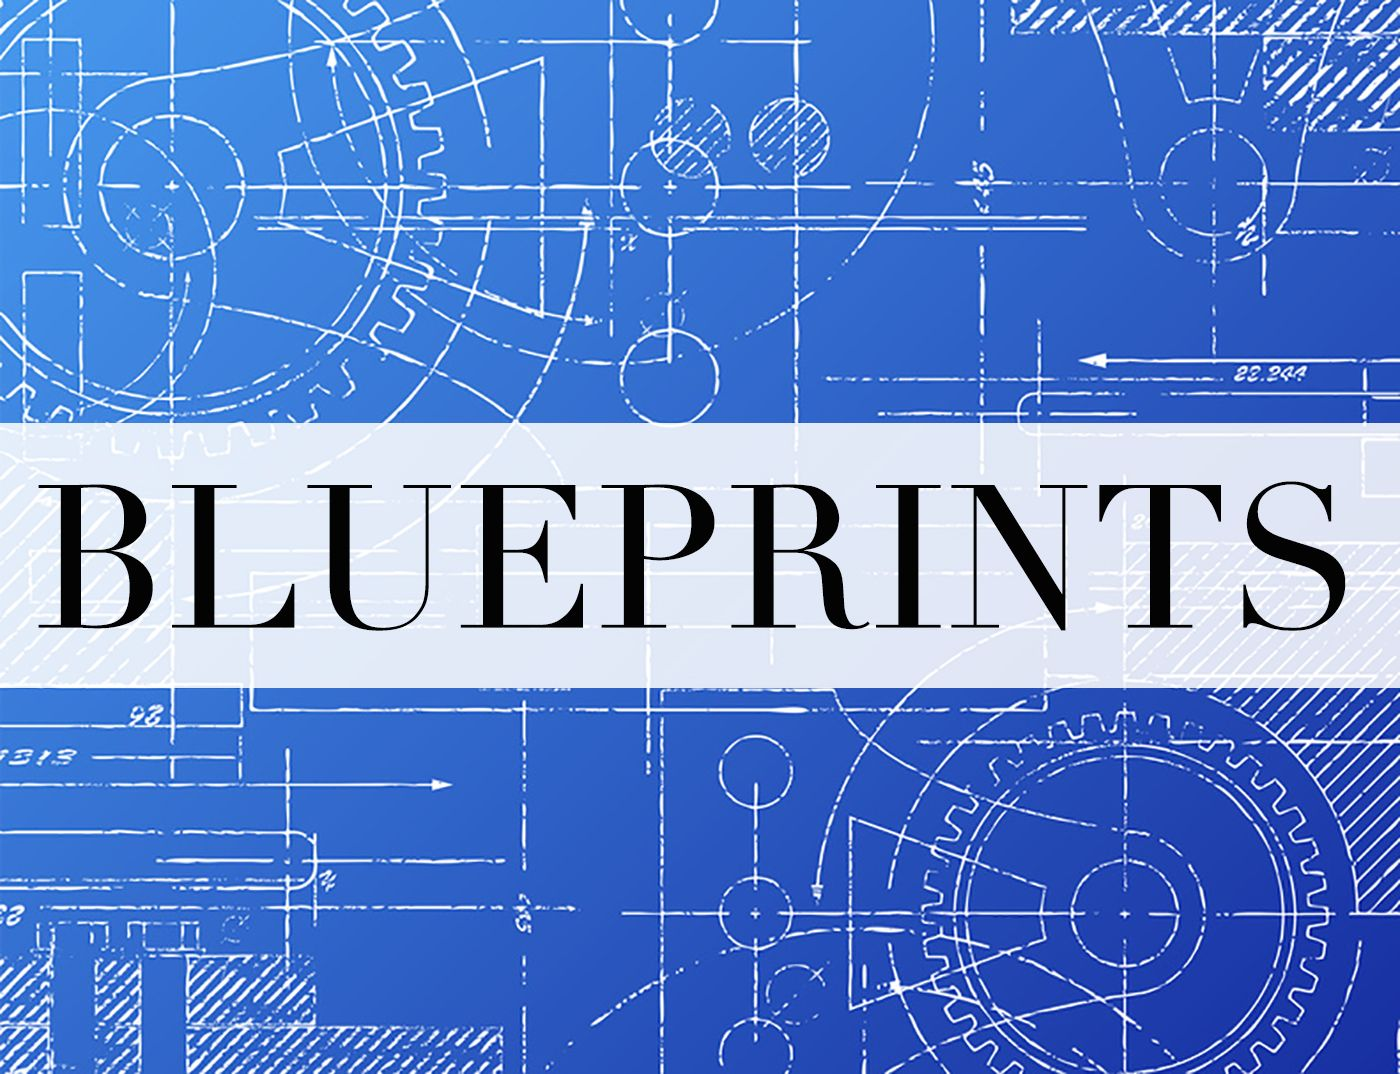 In his latest blog post founder and ceo kody bateman writes about in his latest blog post founder and ceo kody bateman writes about finding the blueprint for success in your mlm business read more in the post below and malvernweather Images